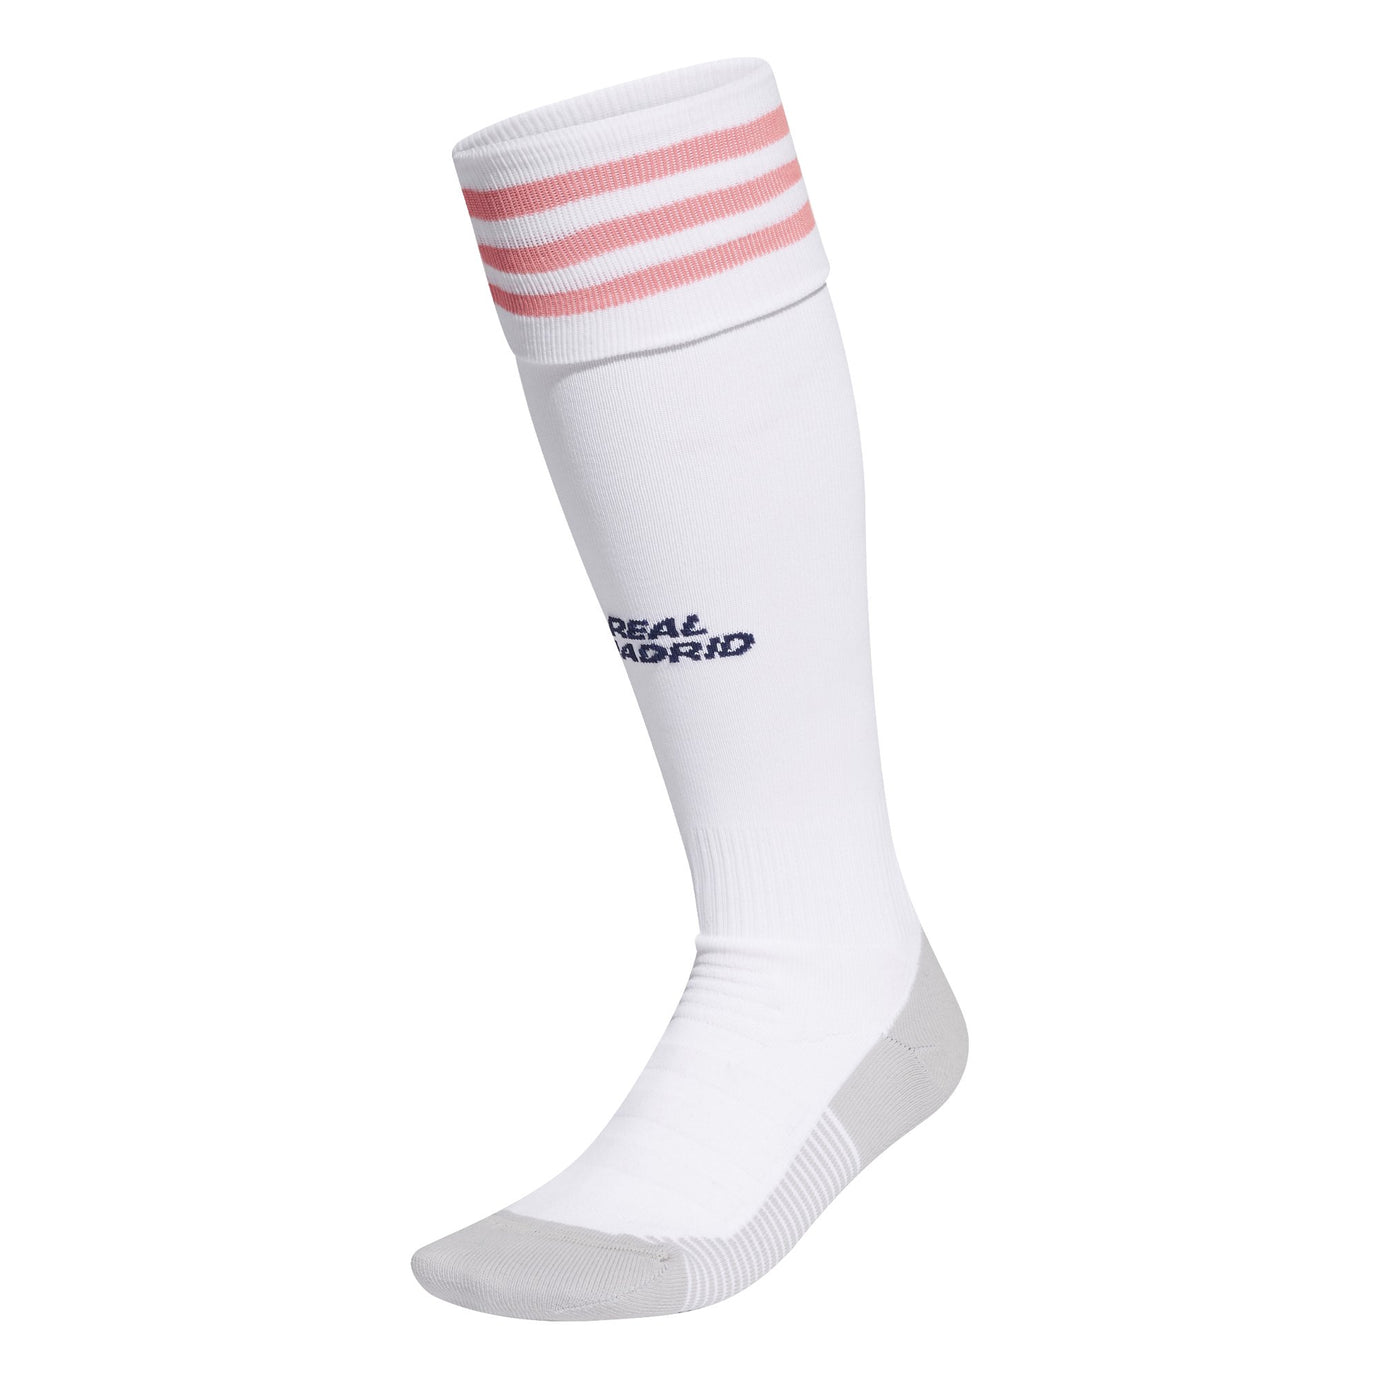 ADI REAL 20-21 HOME SOCK WHITE